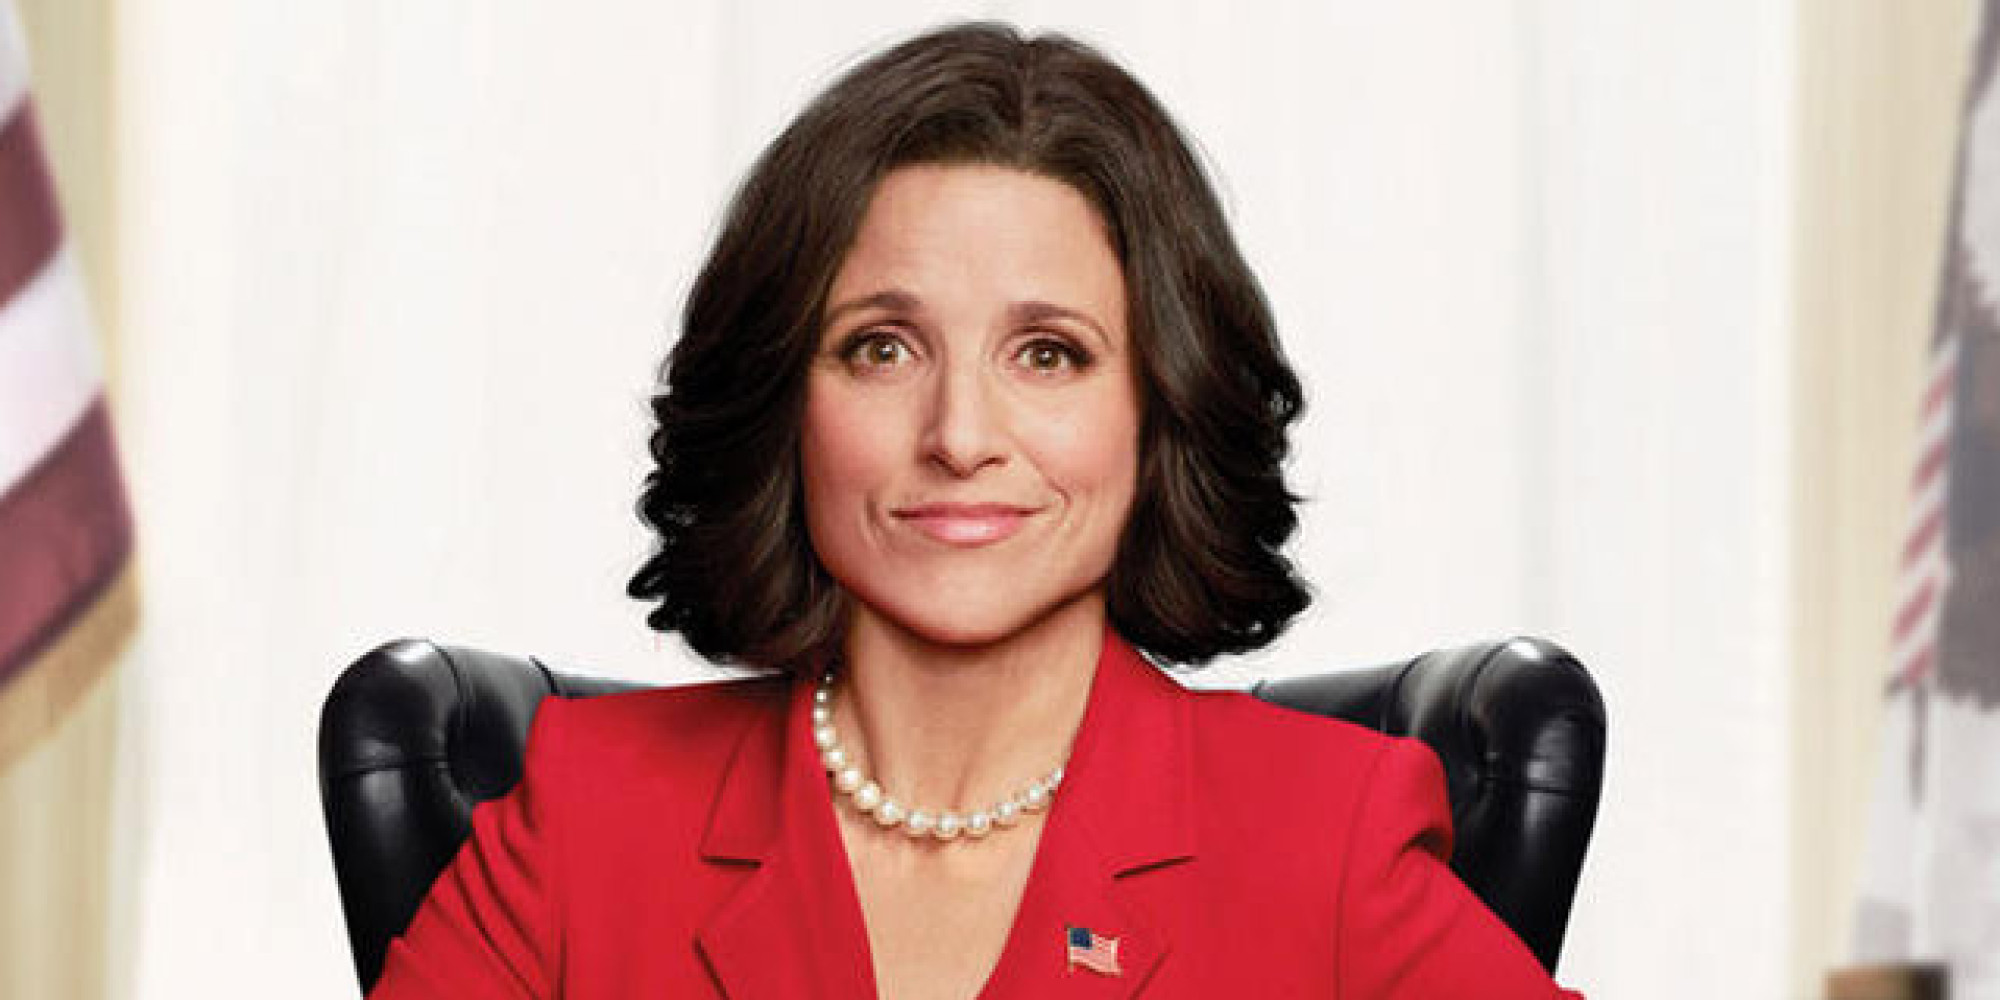 Social Work Hbo 39veep 39 Rolls Out A Nasty Smear Campaign On Social Media